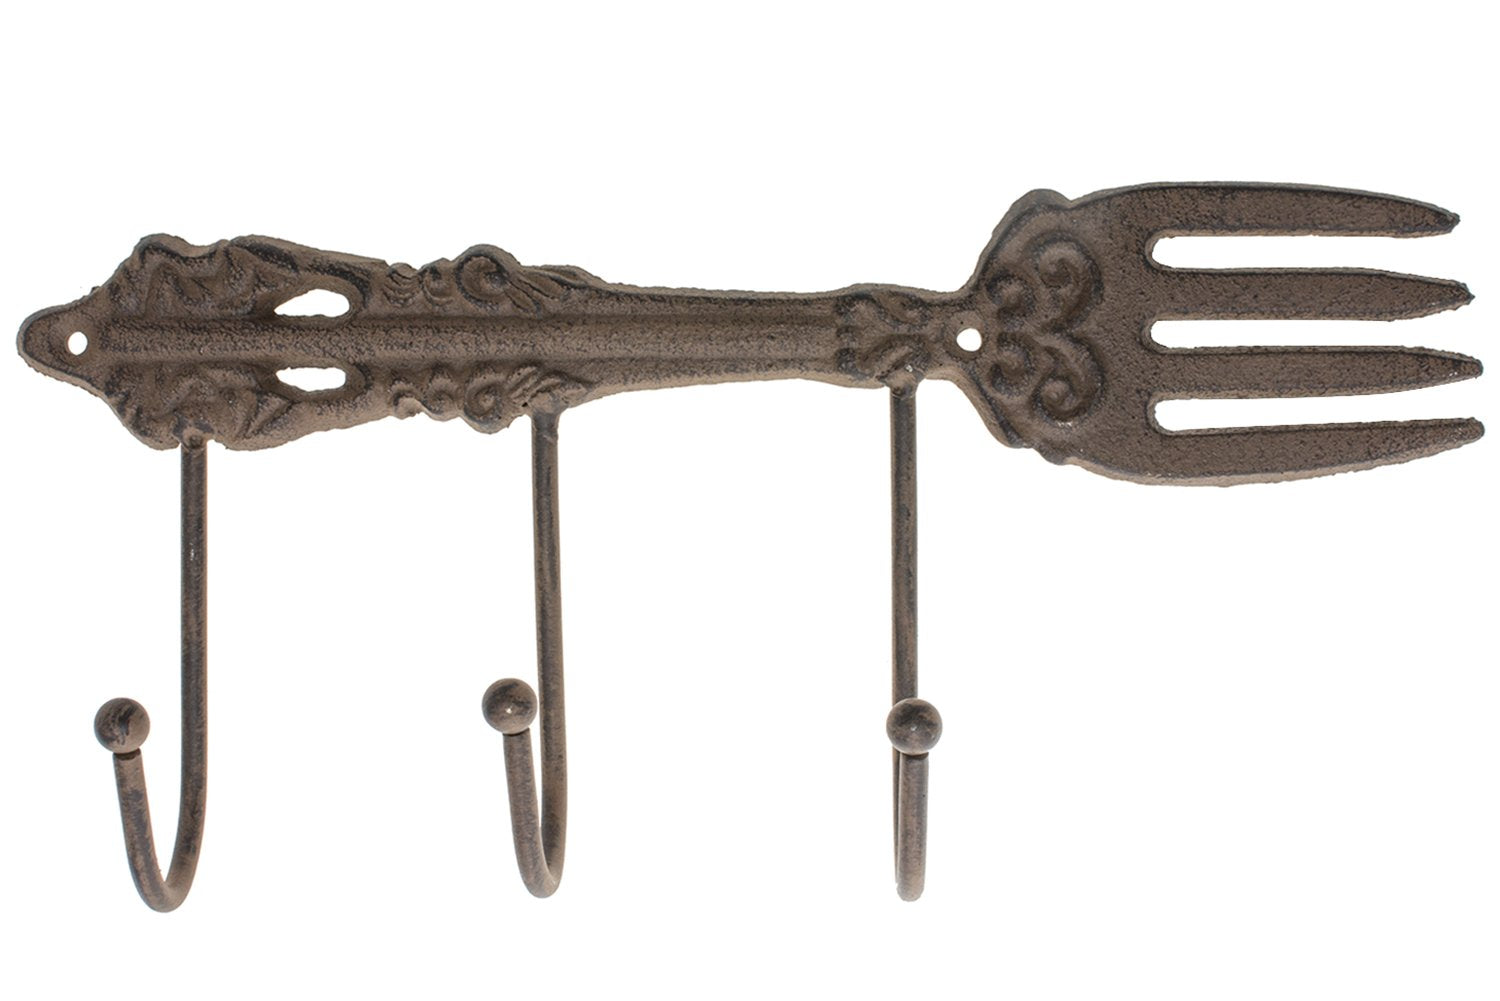 "Cast Iron Wall Hanger For Kitchen | Vintage Fork With 3 Hooks | Decorative Cast Iron Kitchen Storage Towel Rack | 11.2 x 4.9""- With Screws And Anchors By Comfify -CA-1504-17-BR"